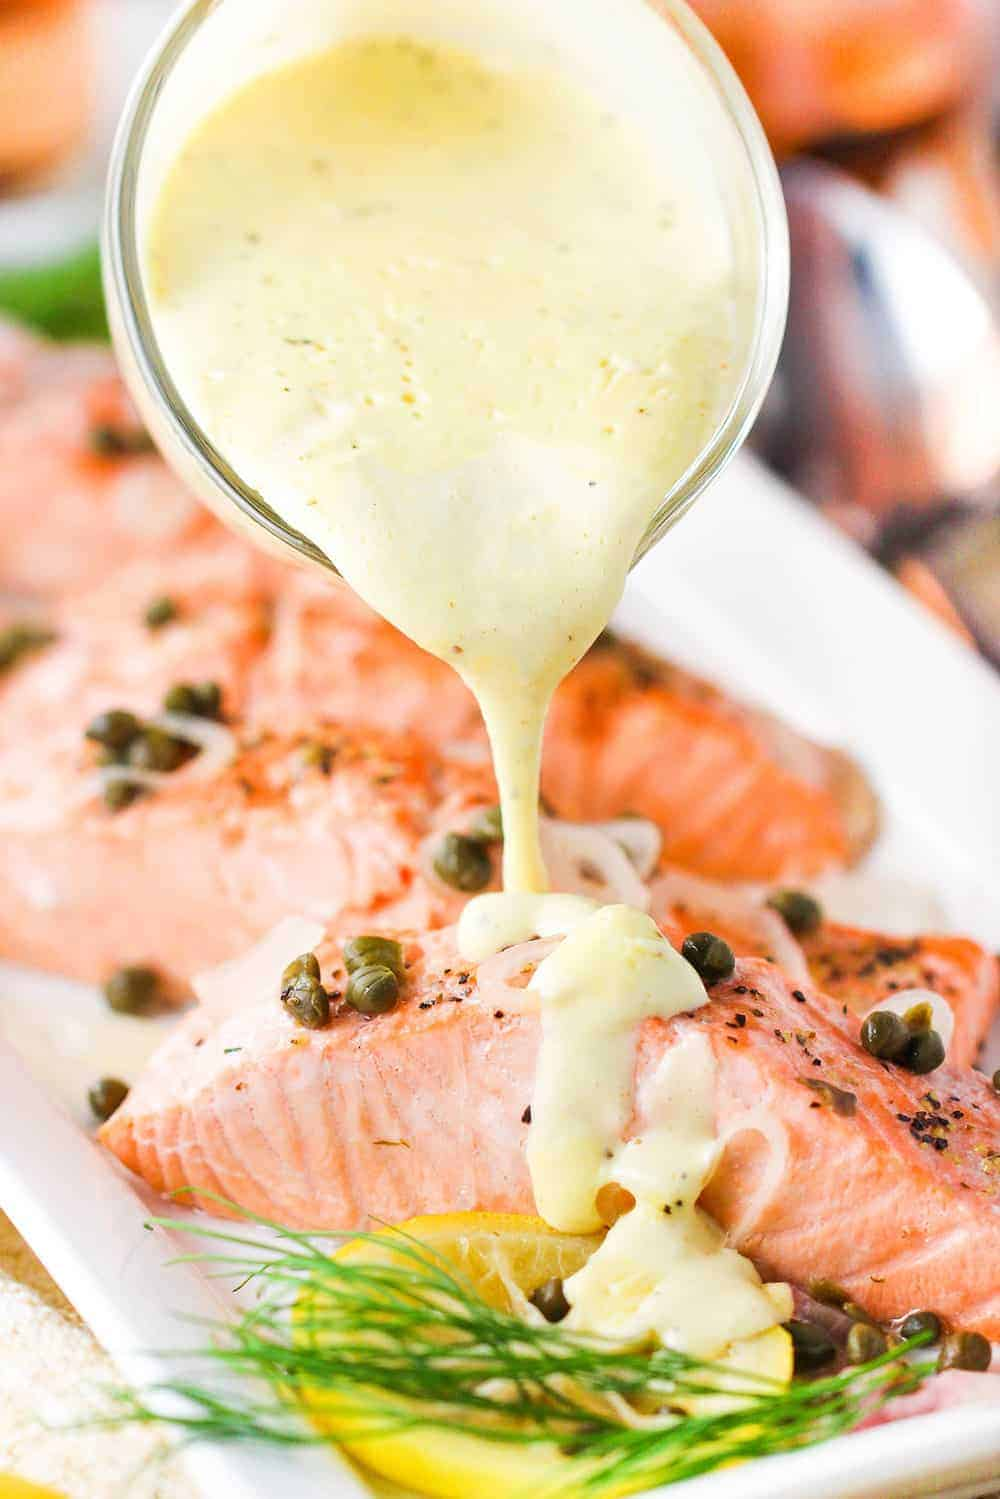 Poached salmon with hollandaise sauce being poured on top